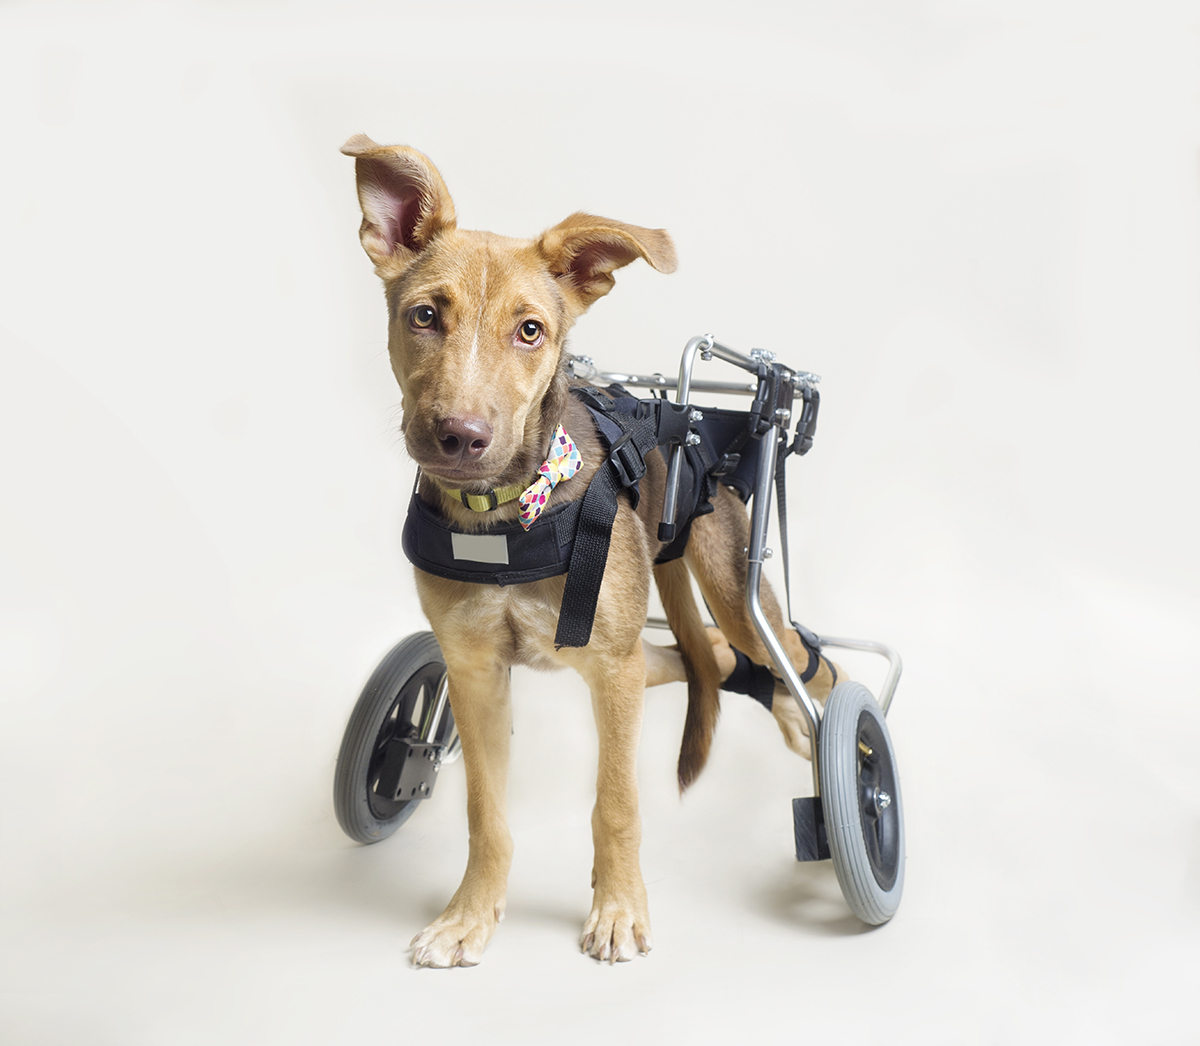 Disabled dog in handicap wheels.jpg